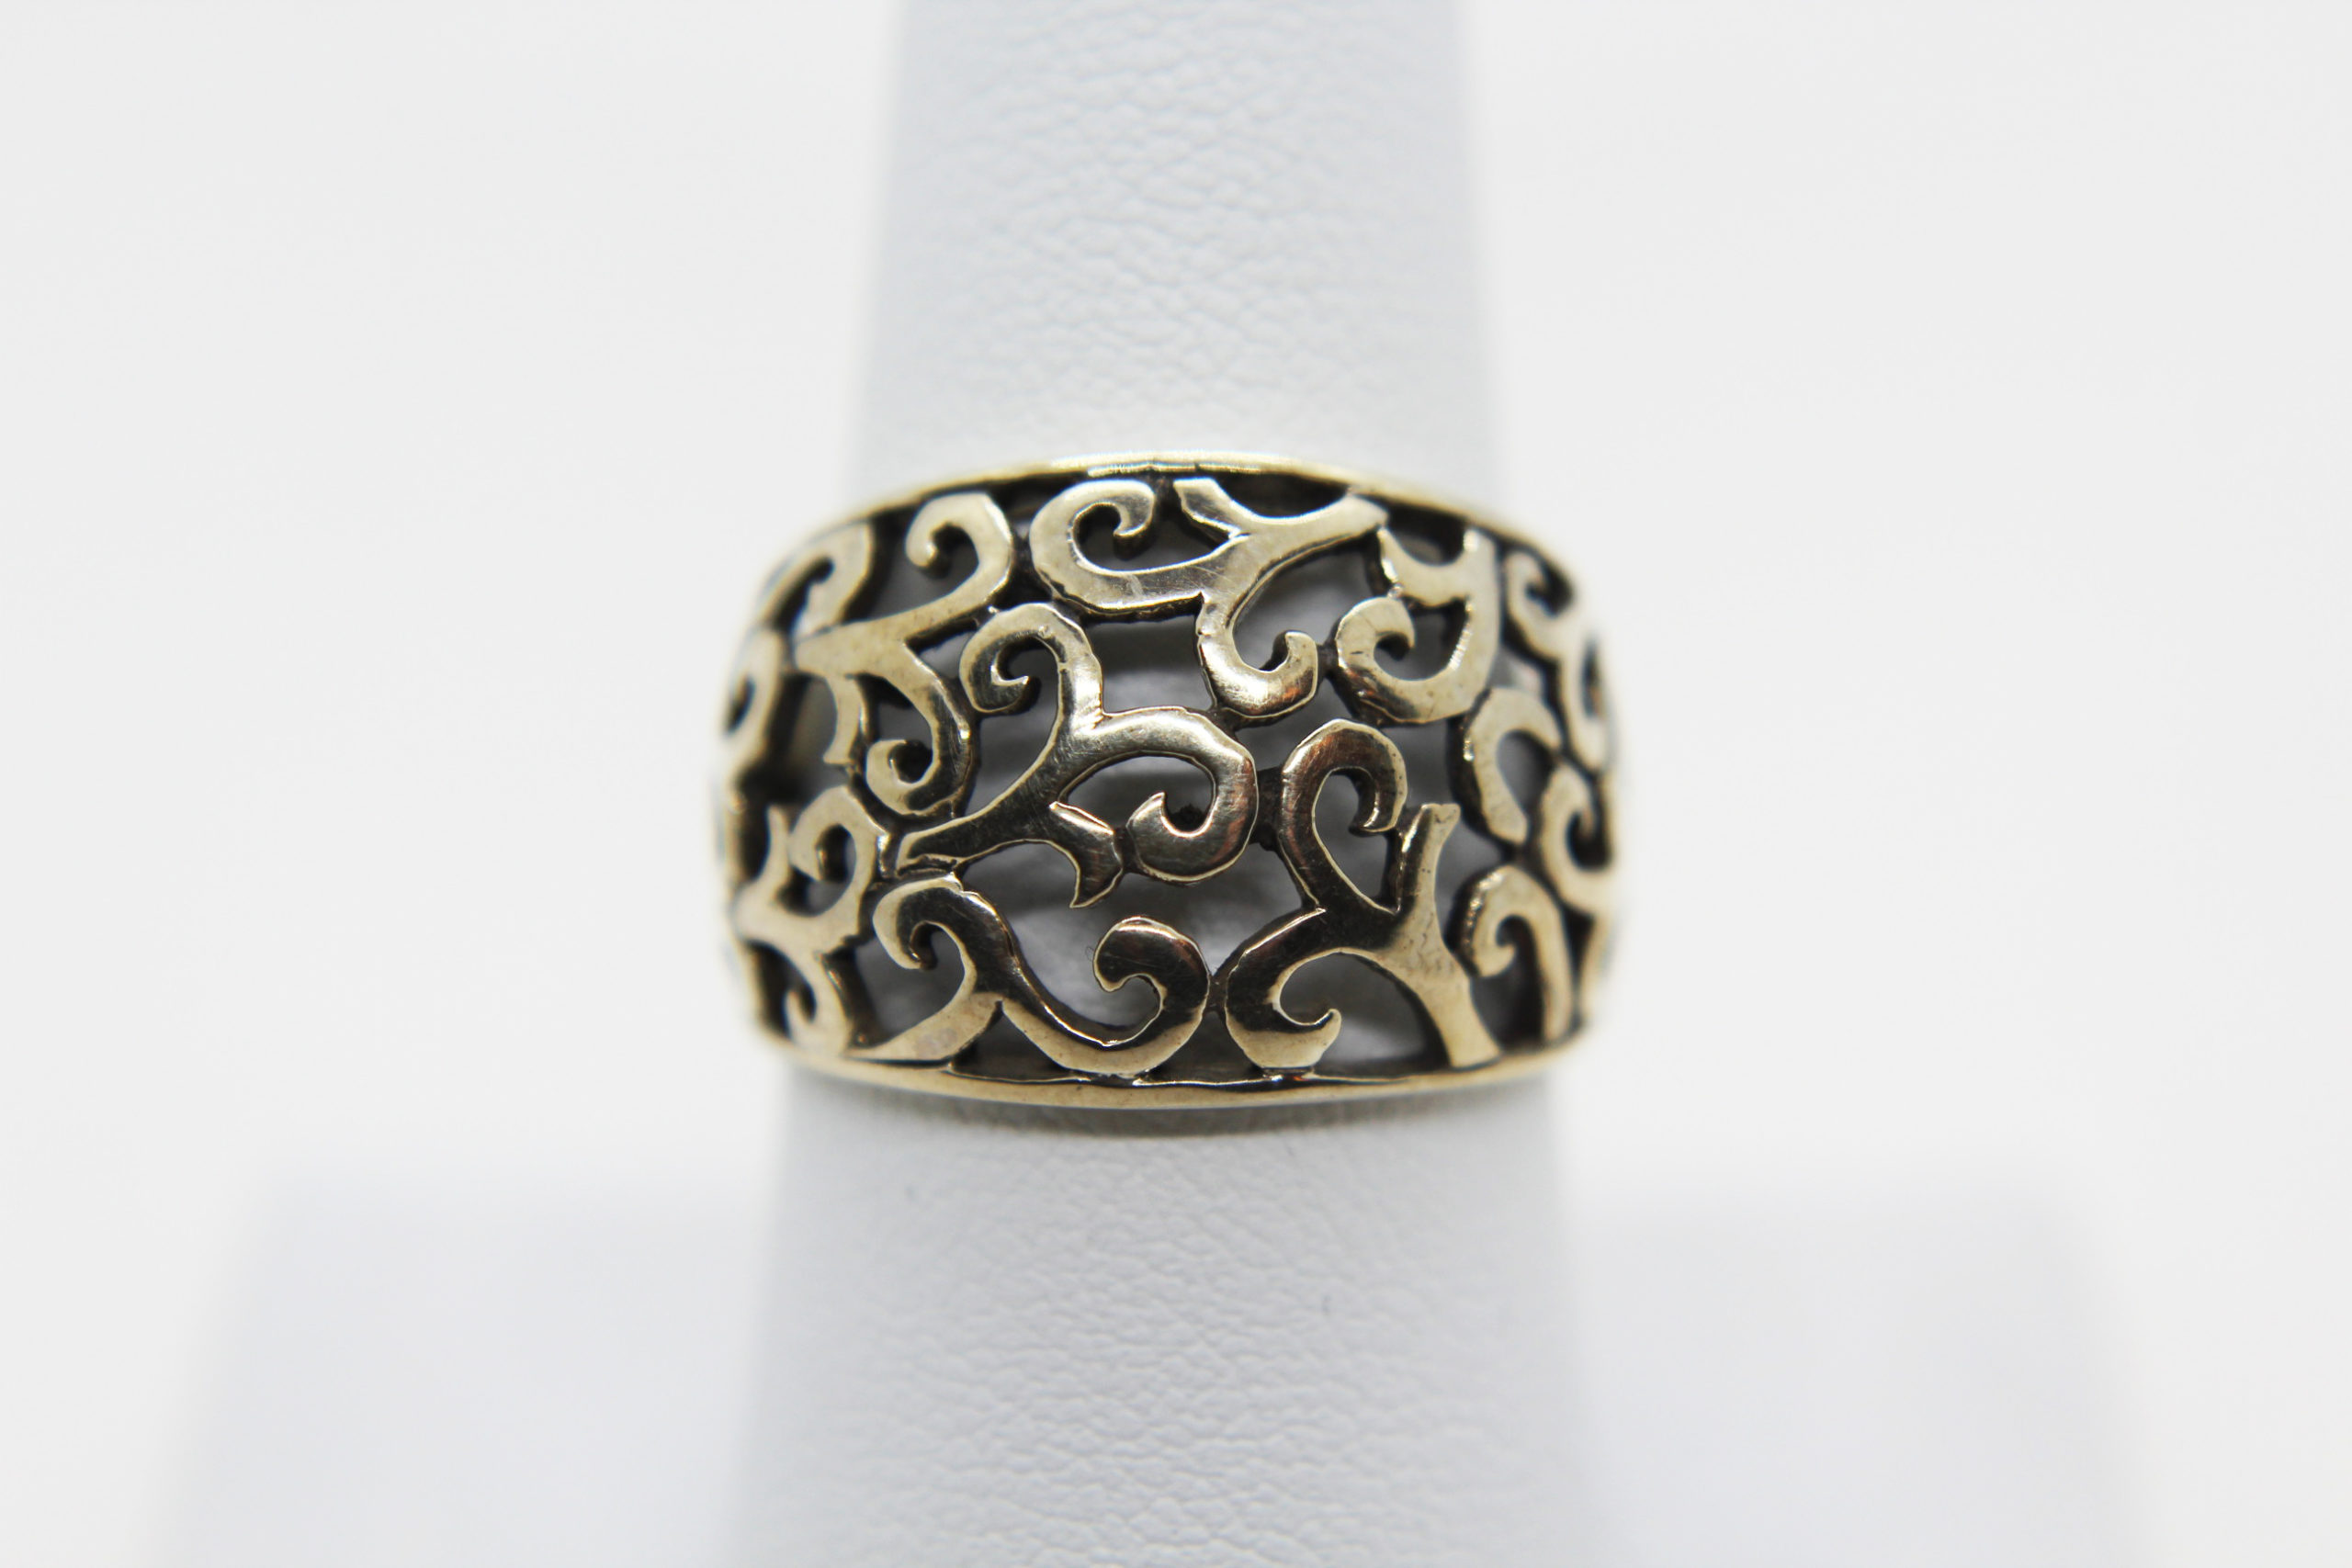 Vintage Silver Swirl Design Ring Size 8.5 | Whispering City RVA